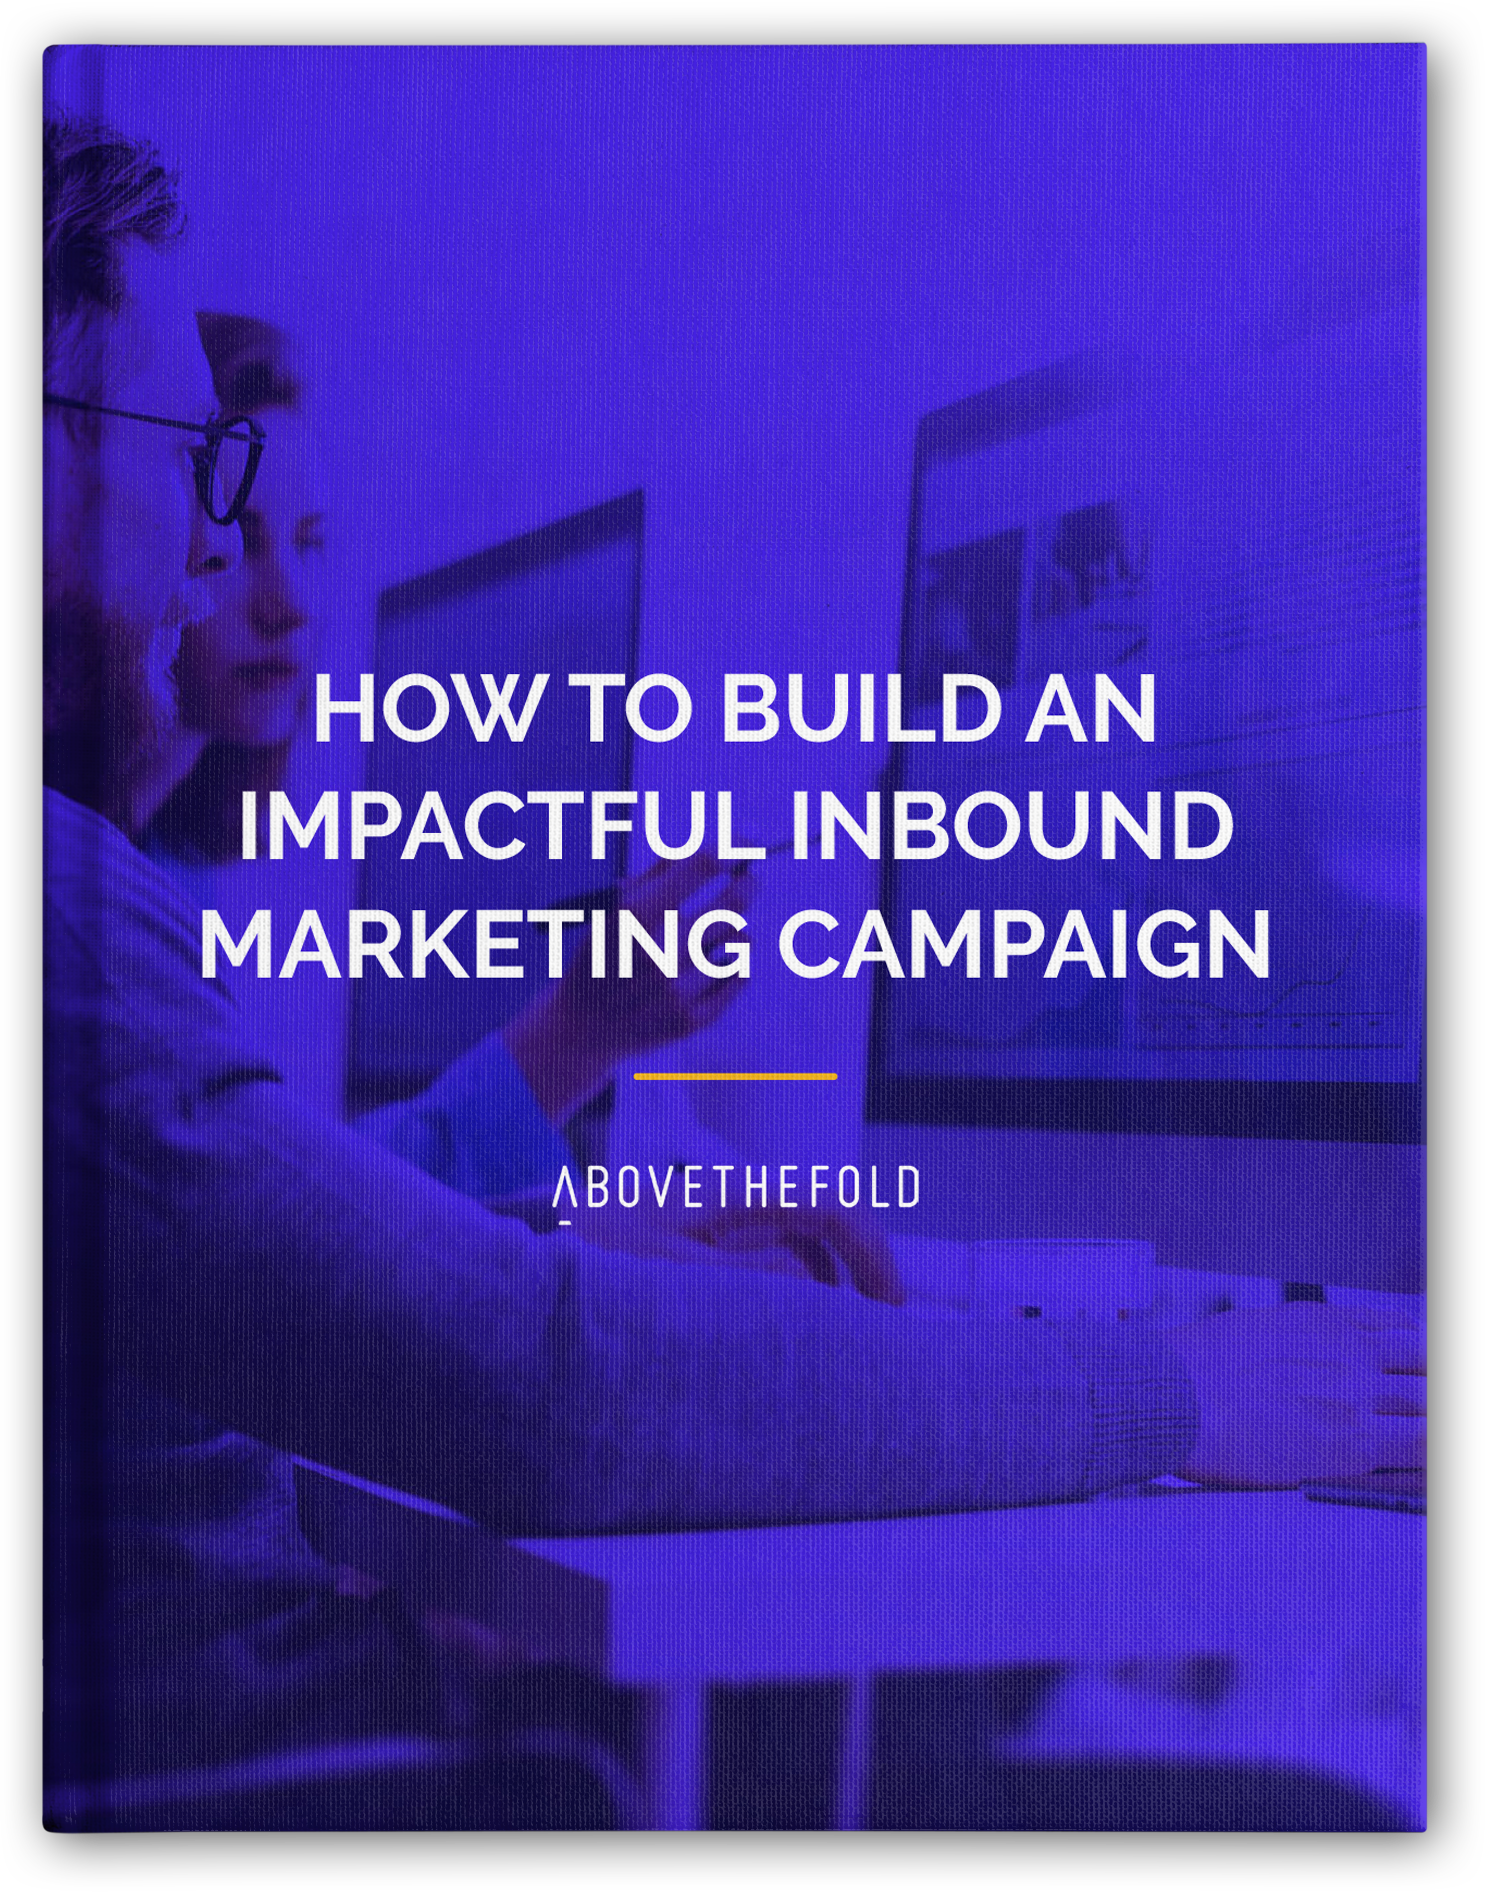 How to Build an Impactful Inbound Marketing Campaign